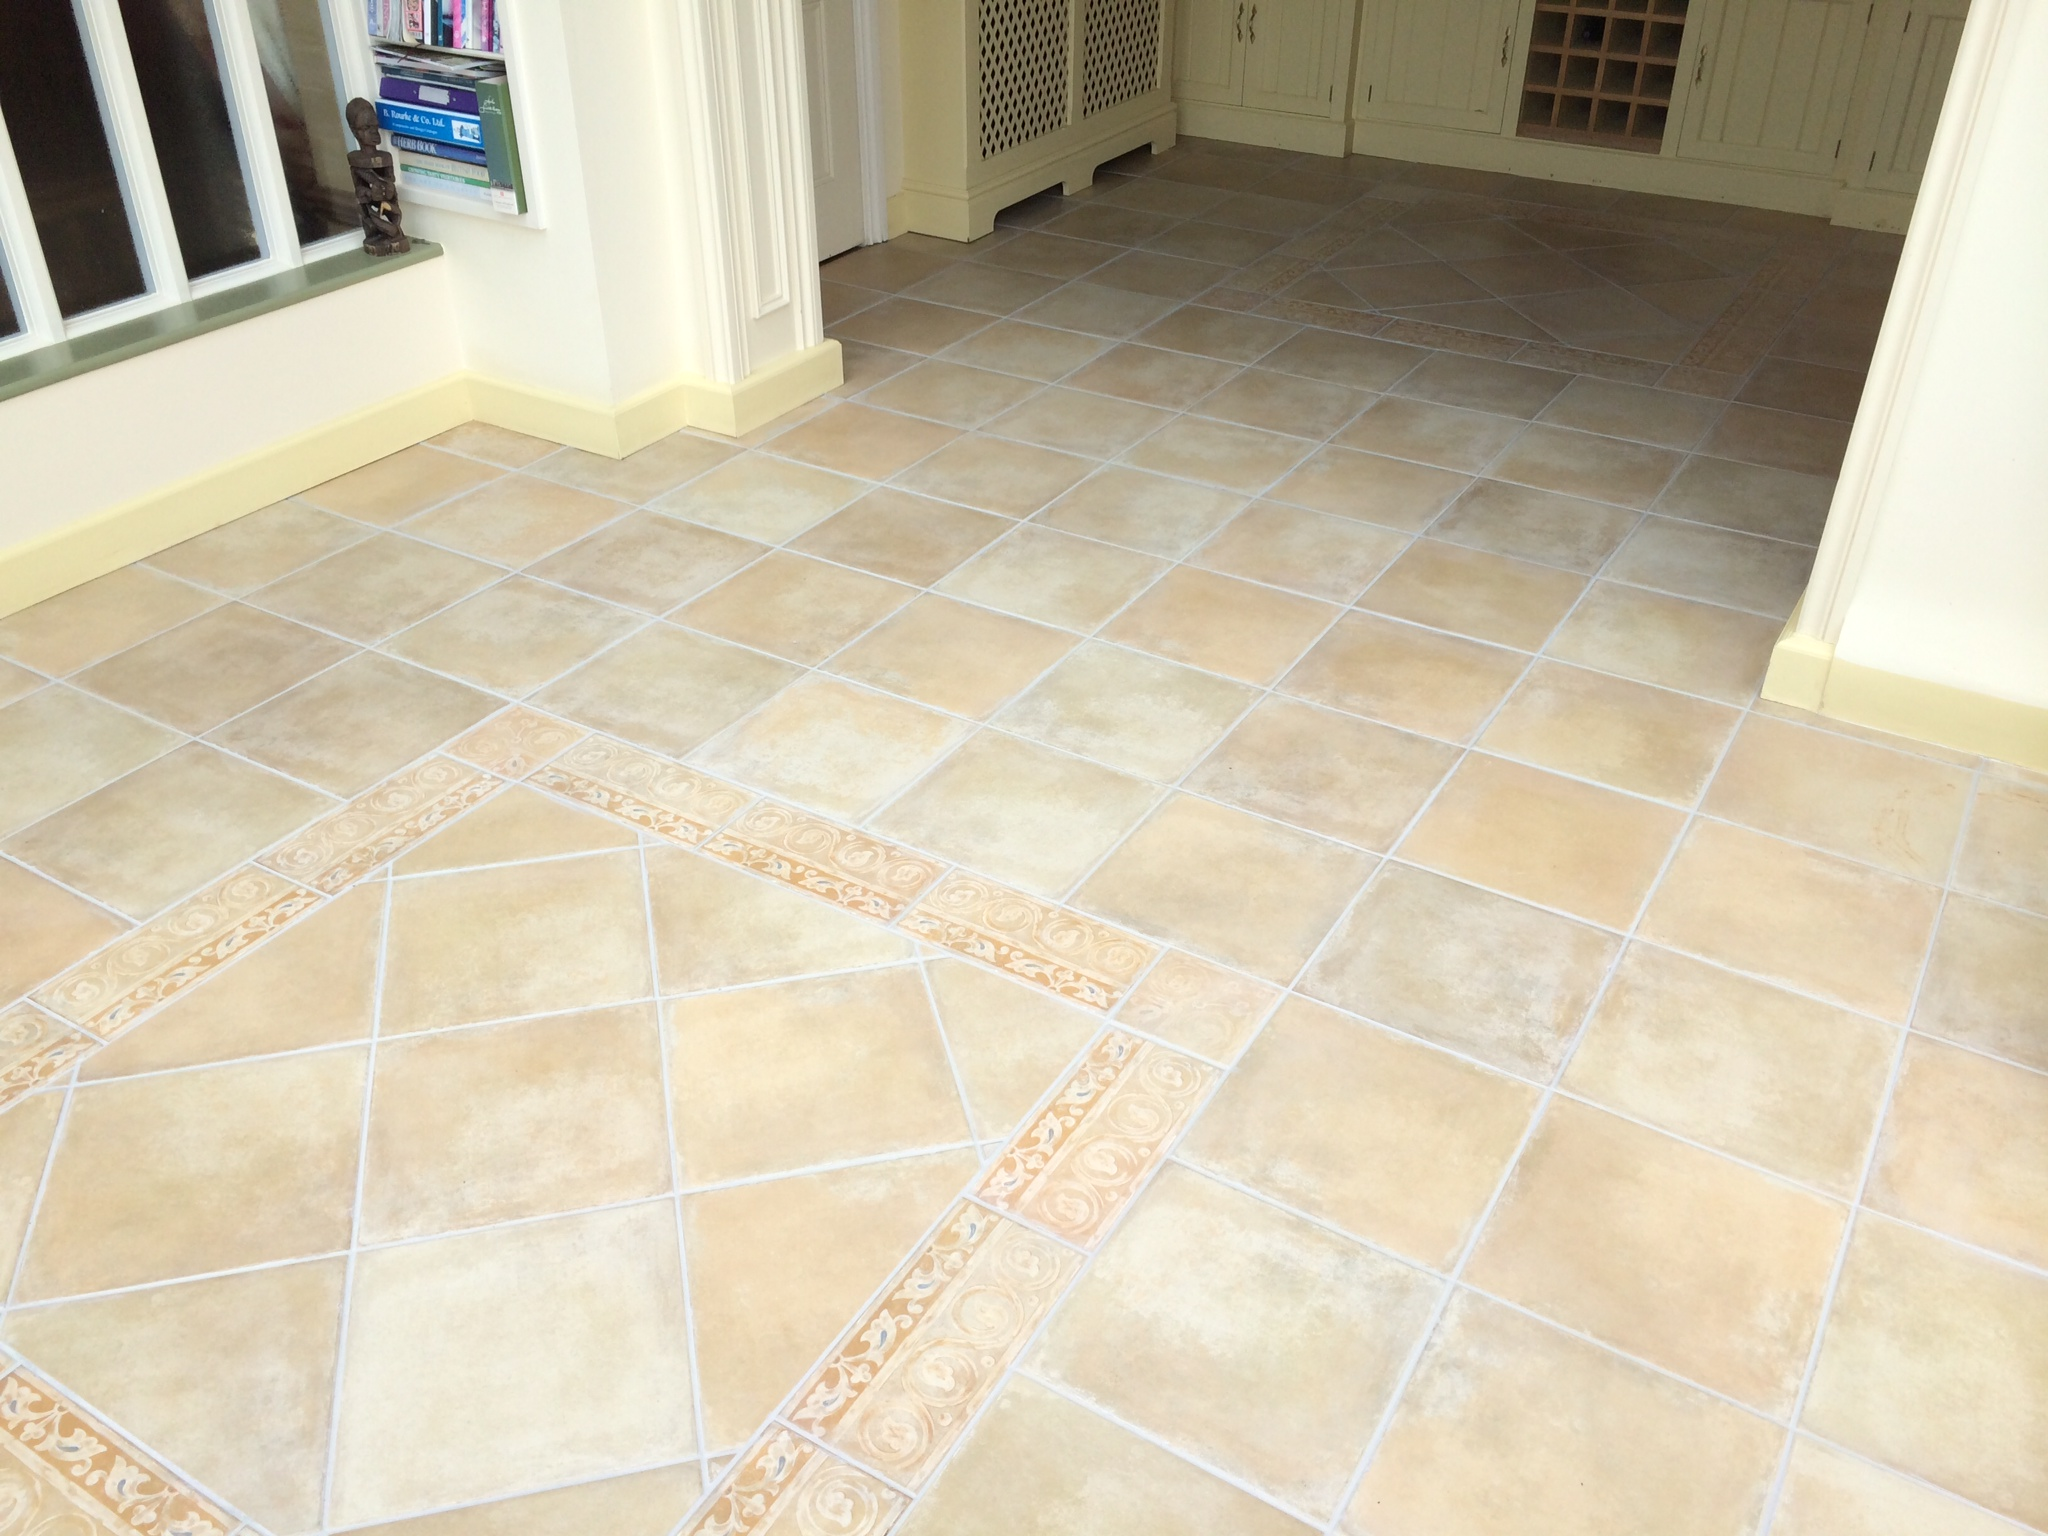 how to clean tile grout uk